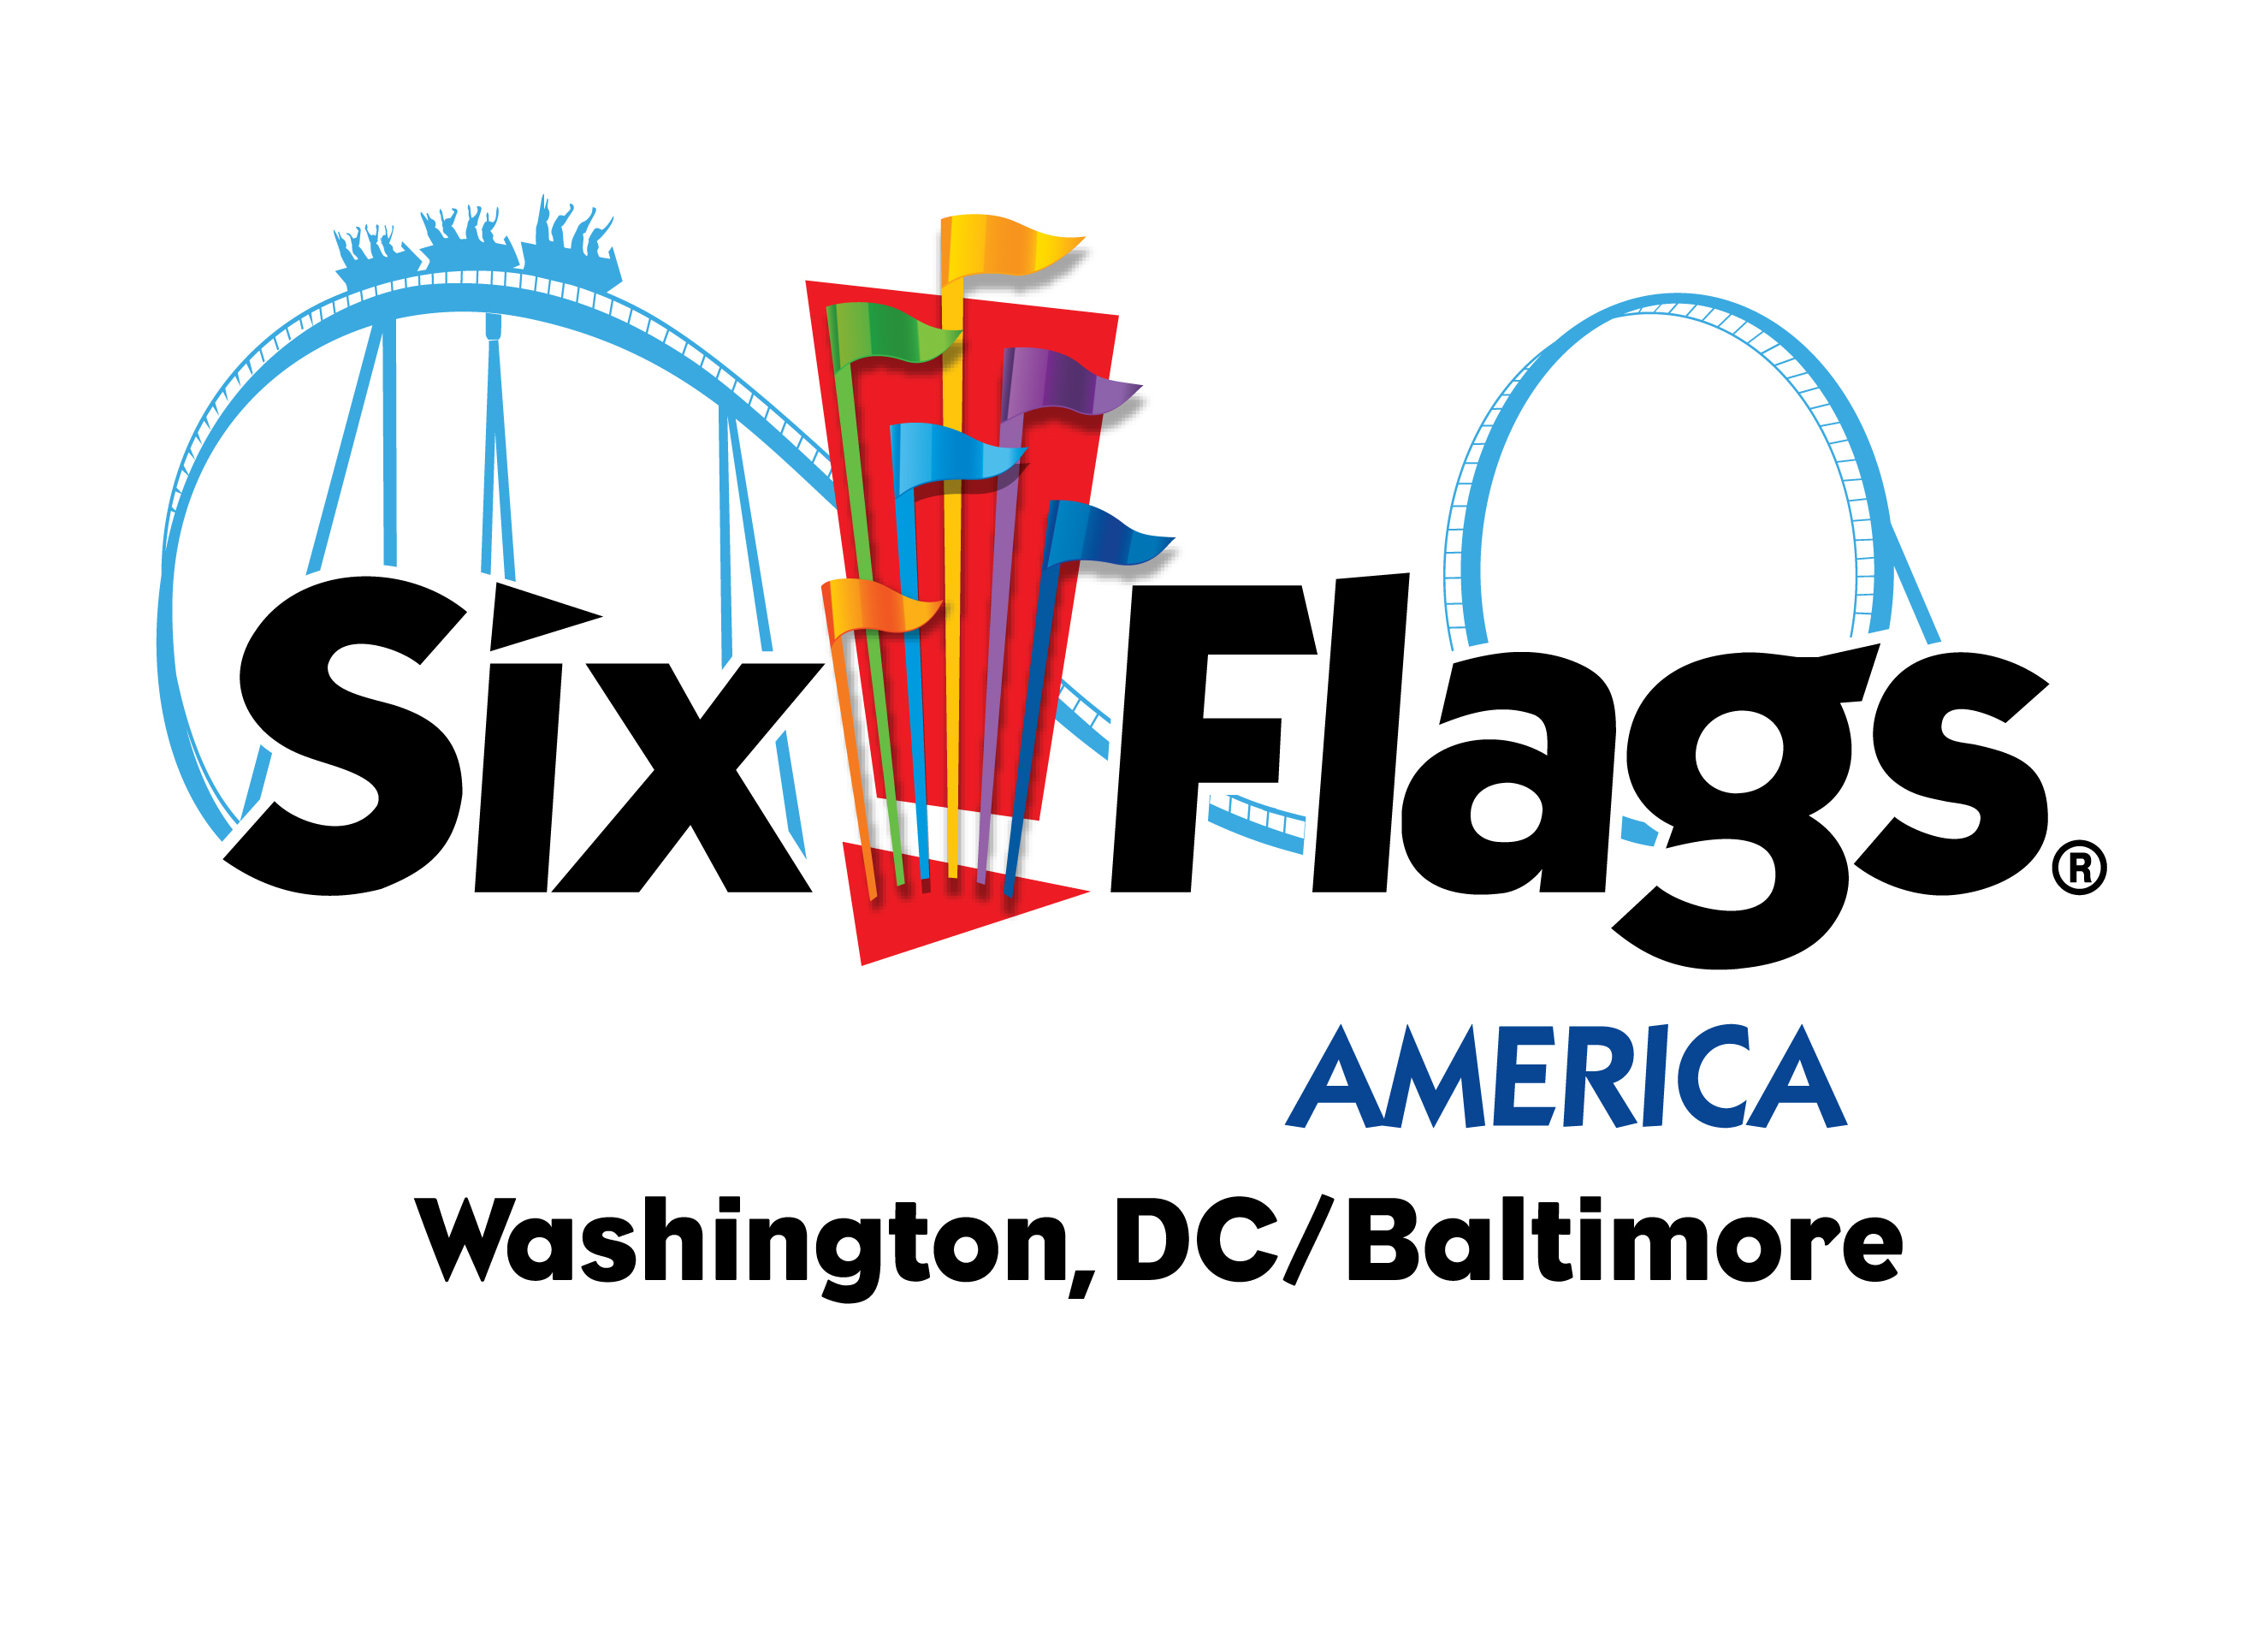 Dmv S Tallest Fastest Pendulum Ride Coming To Six Flags America In 2020 Business Wire